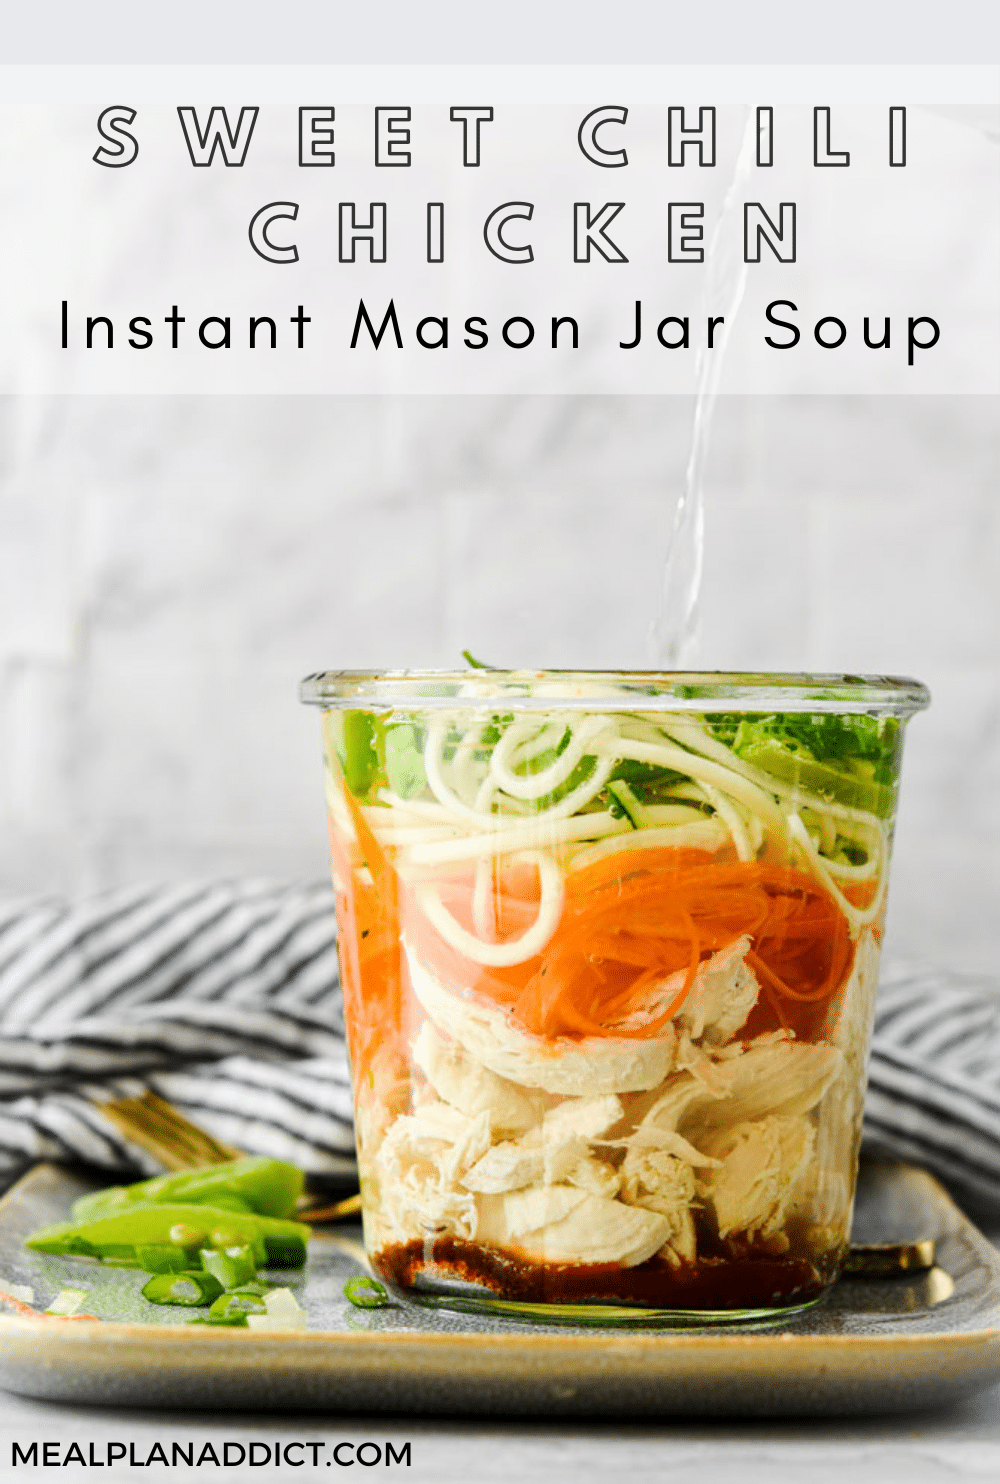 Chicken soup pin for pinterest